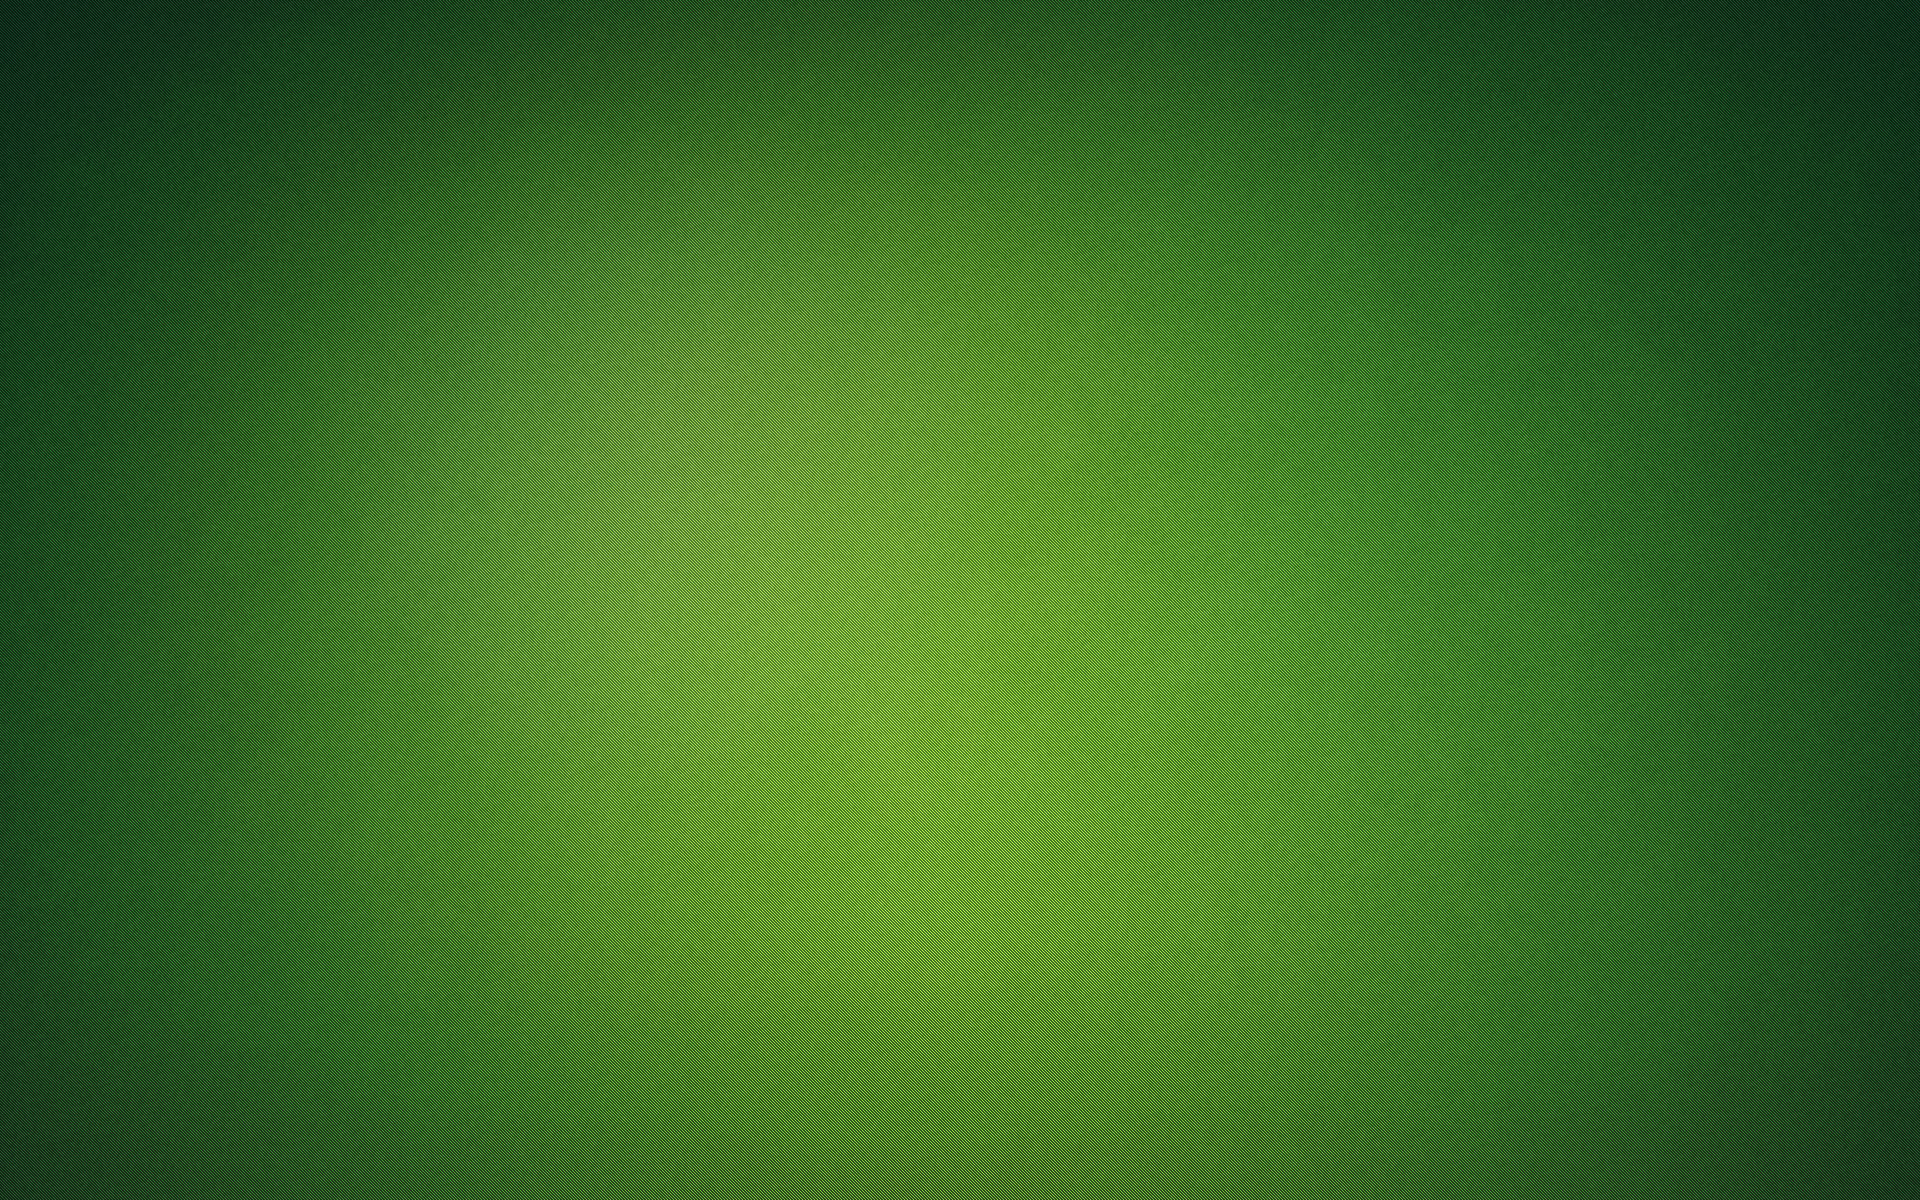 Light Green Texture Hd Wallpaper Wallpaper List 1920x1200